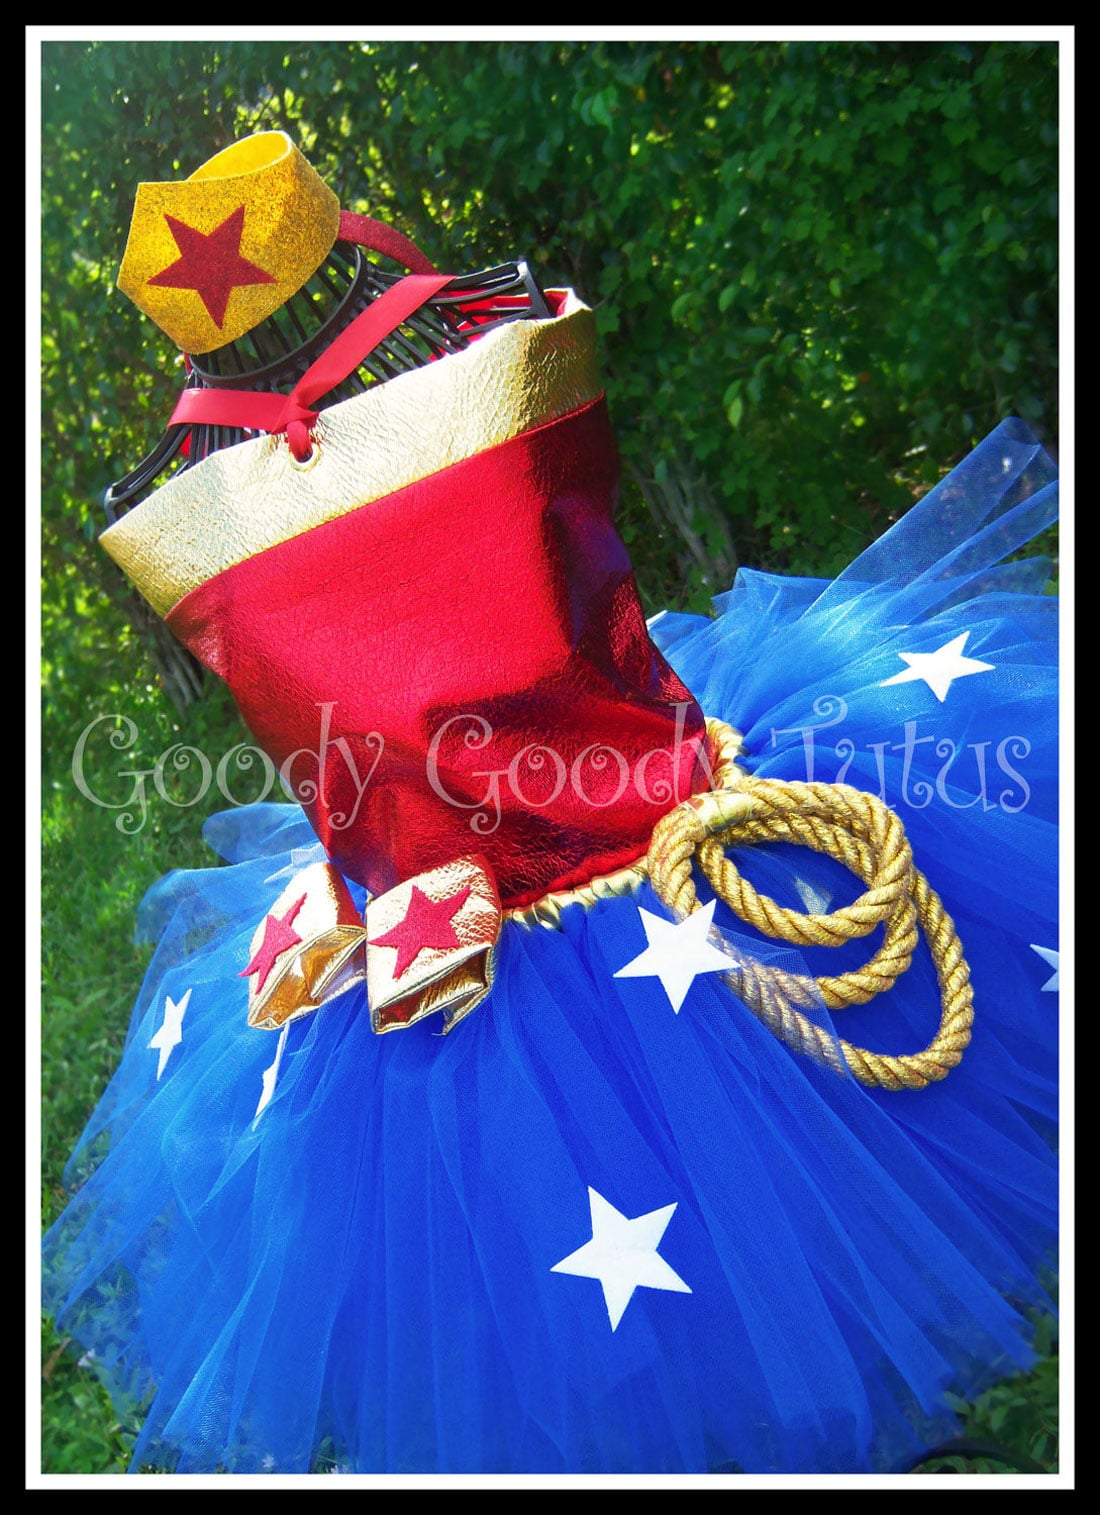 If you are looking to make an easy and adorable Wonder Woman costume, this tutorial has everything you need. I made this costume for my son Elias's superhero birthday party. My little girl had just turned one and looked fiercely adorable in this Wonder Woman tutu and onesie.